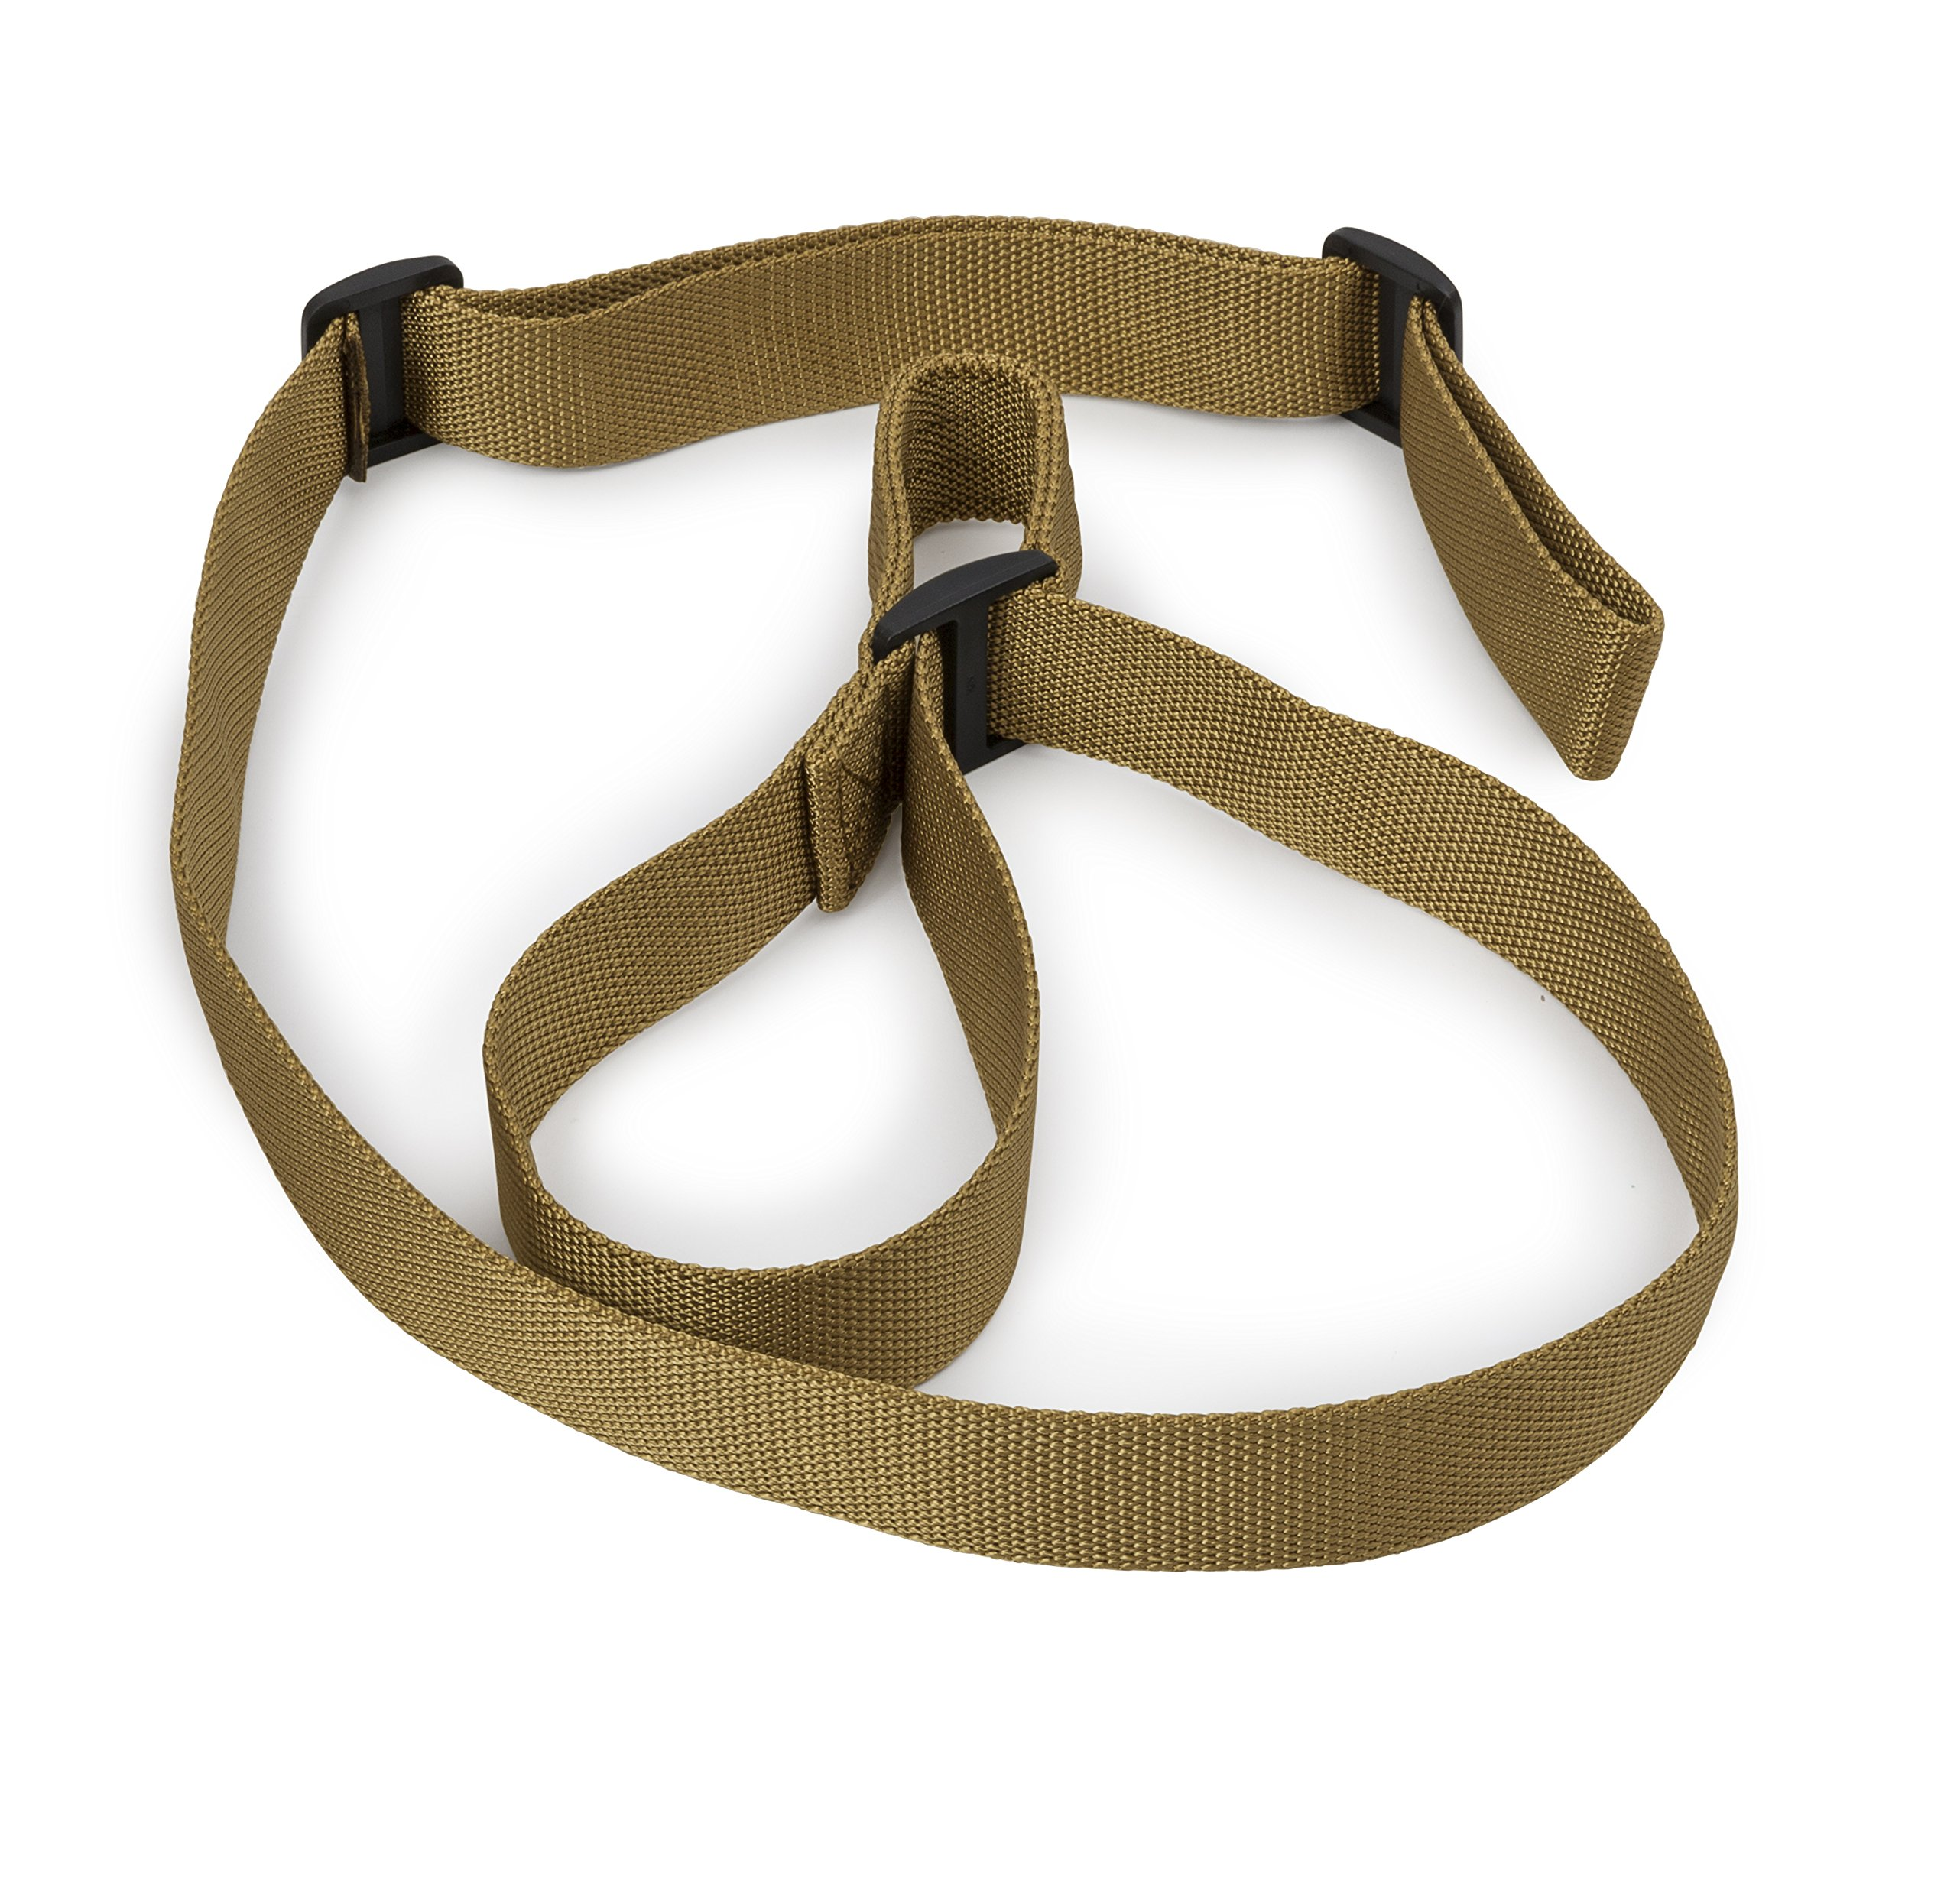 STI Rifle Sling - 2 Point Sling with Adjustable Thumb Loop for Hunting Sports and Outdoors - 1.25 Wide Adjusts 15 to 55 Inches Long by STI